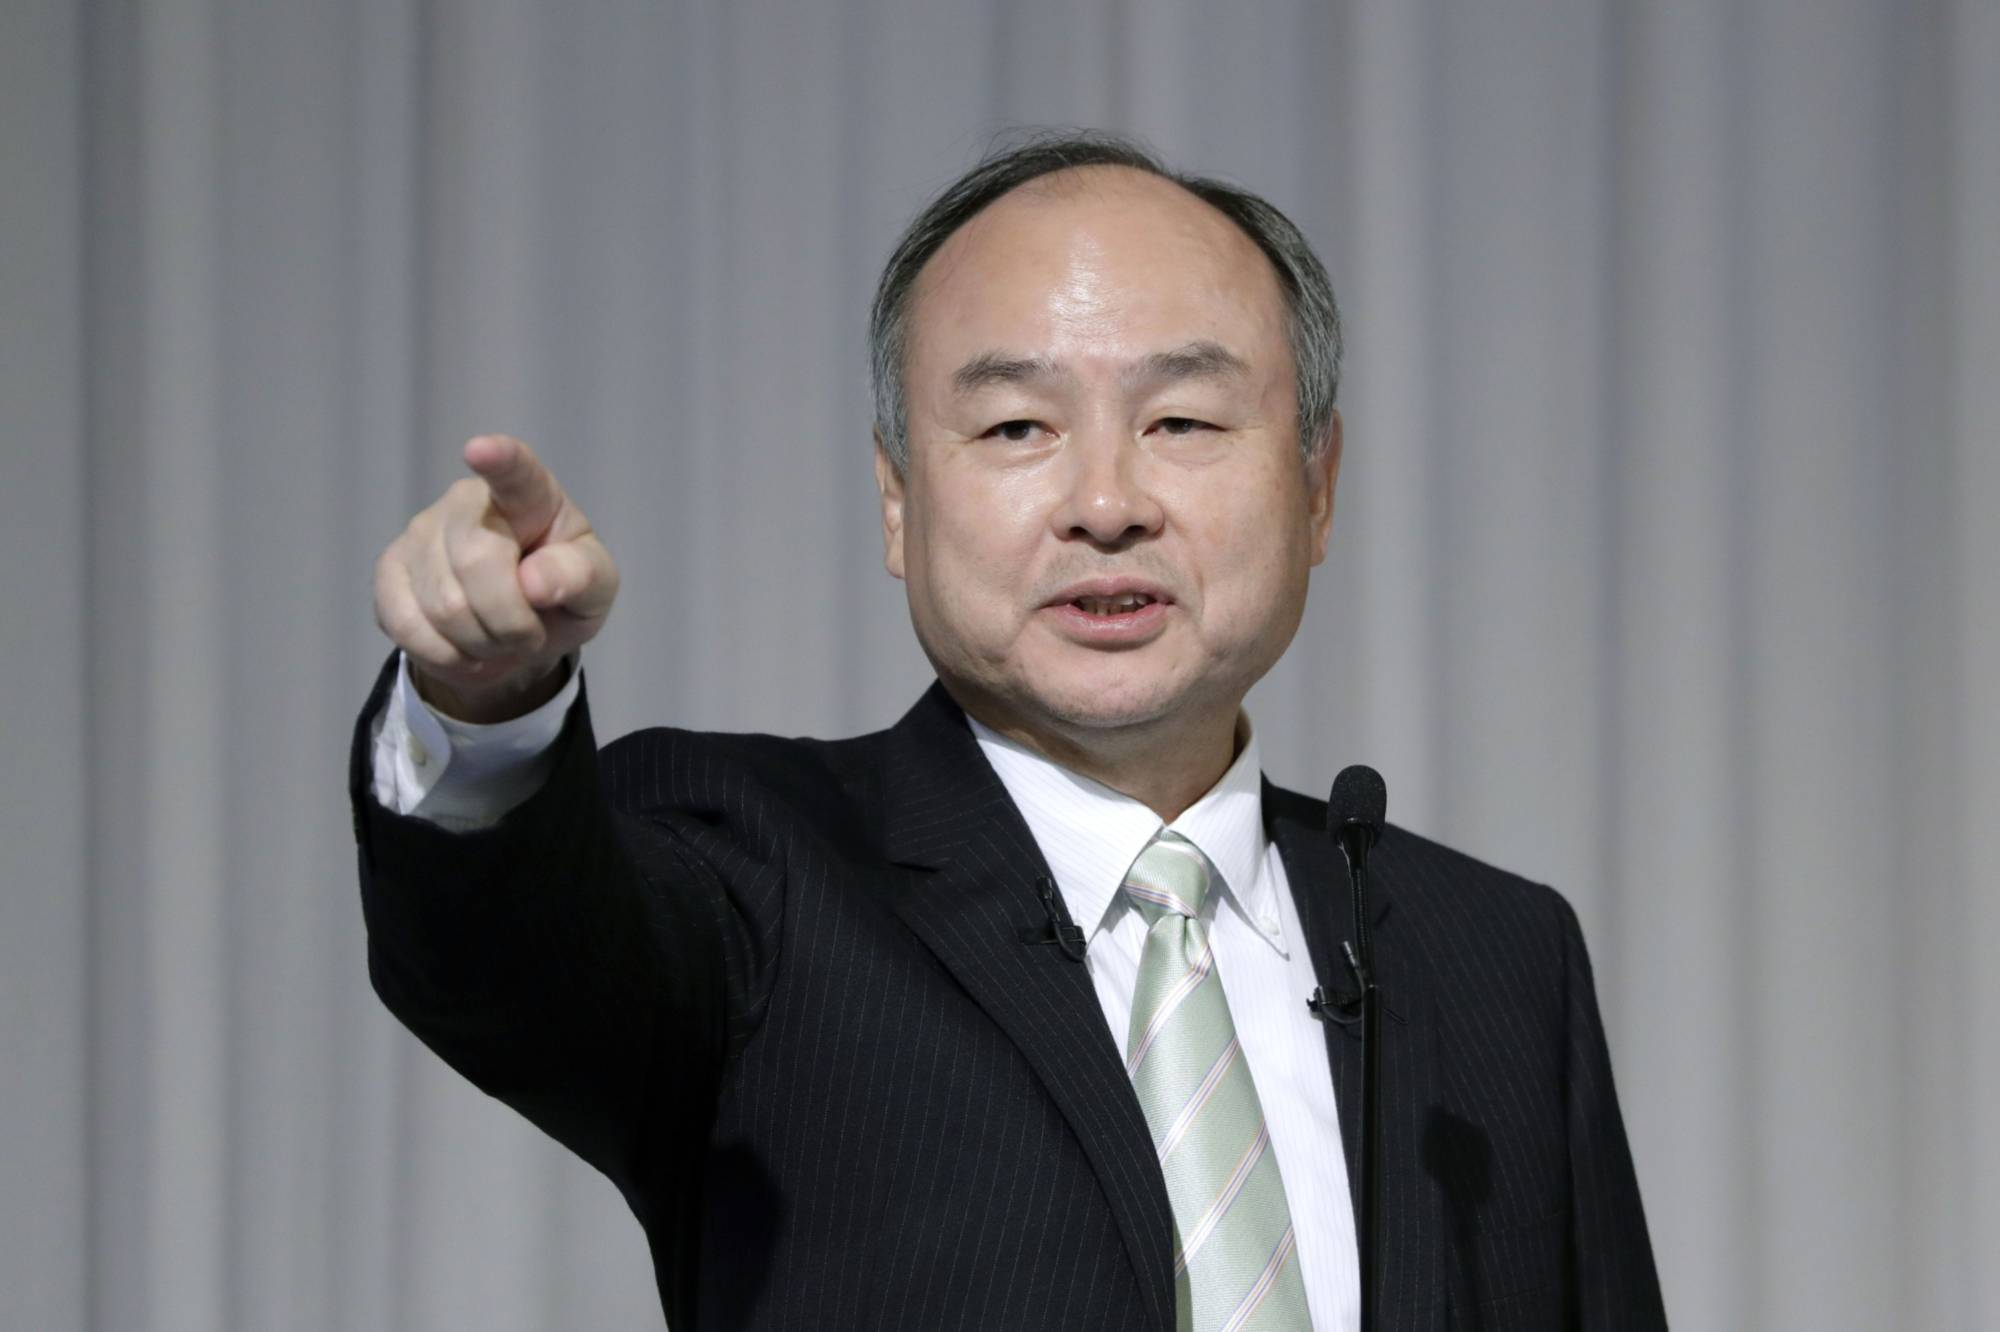 Masayoshi Son's foray into highly leveraged derivatives is giving investors for SoftBank Group fresh reason to worry. | BLOOMBERG